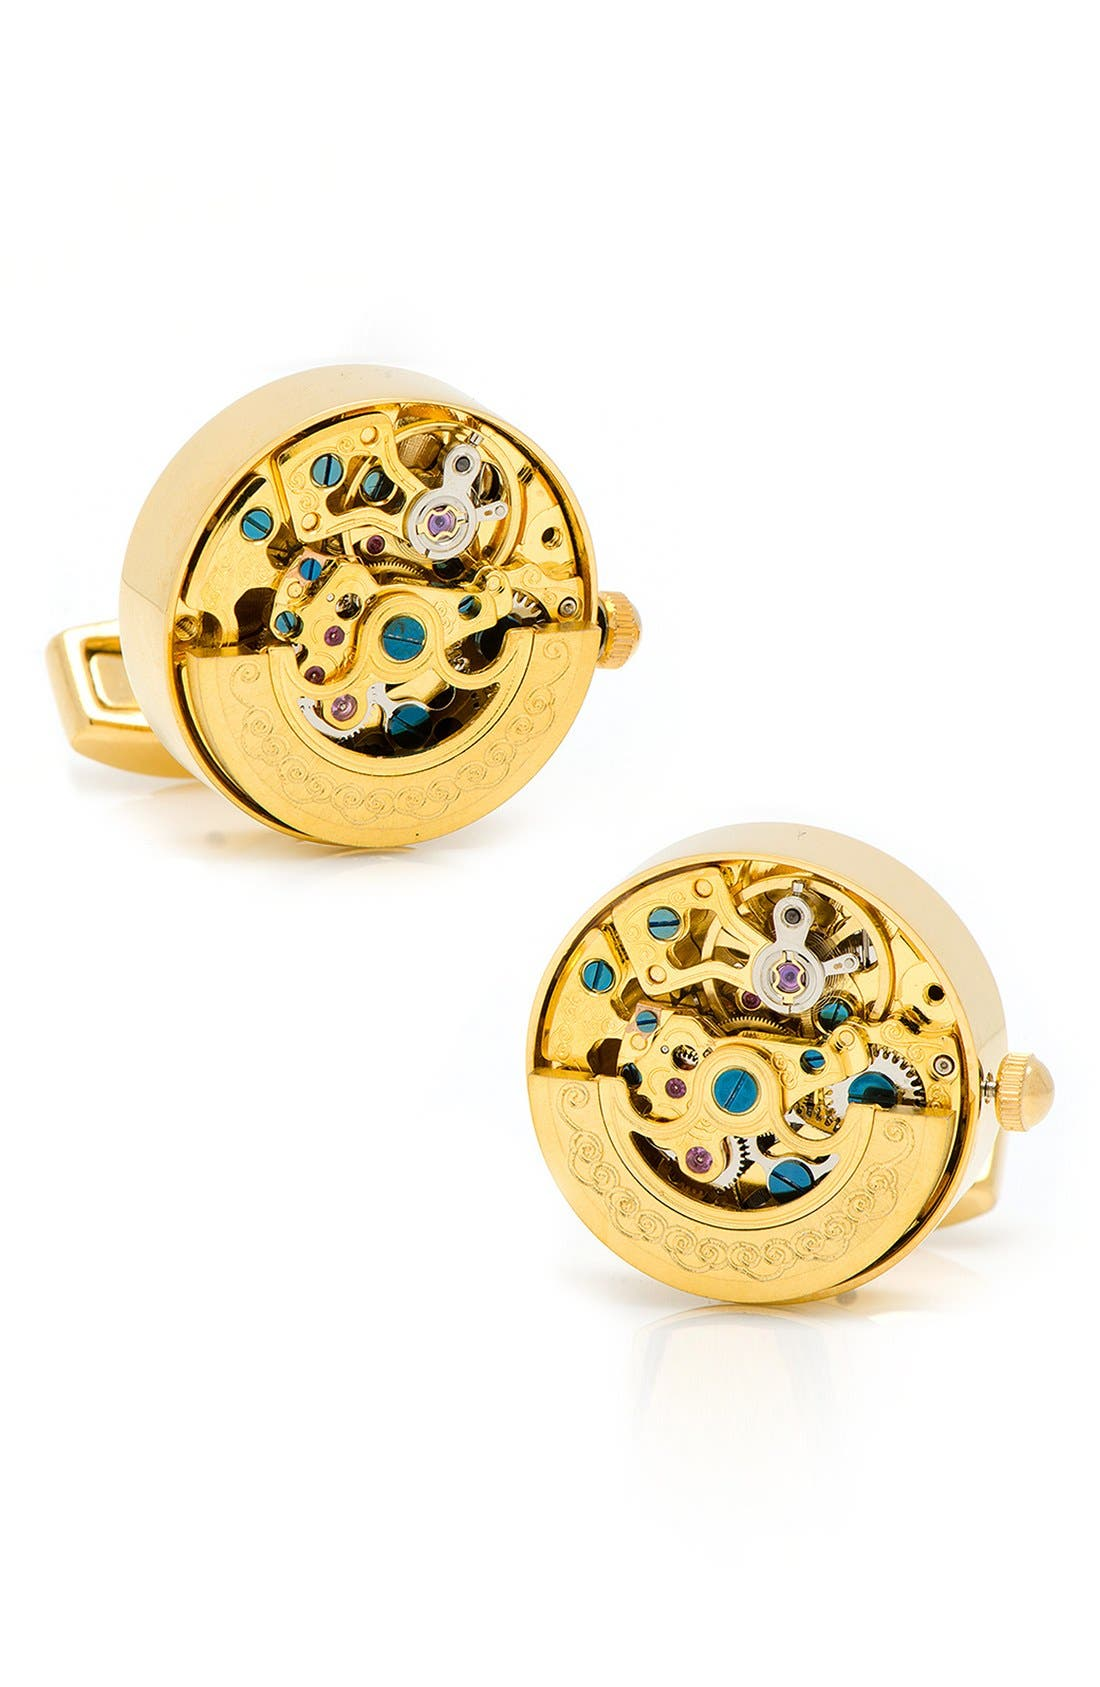 PENNY BLACK 40 Kinetic Watch Cuff Links